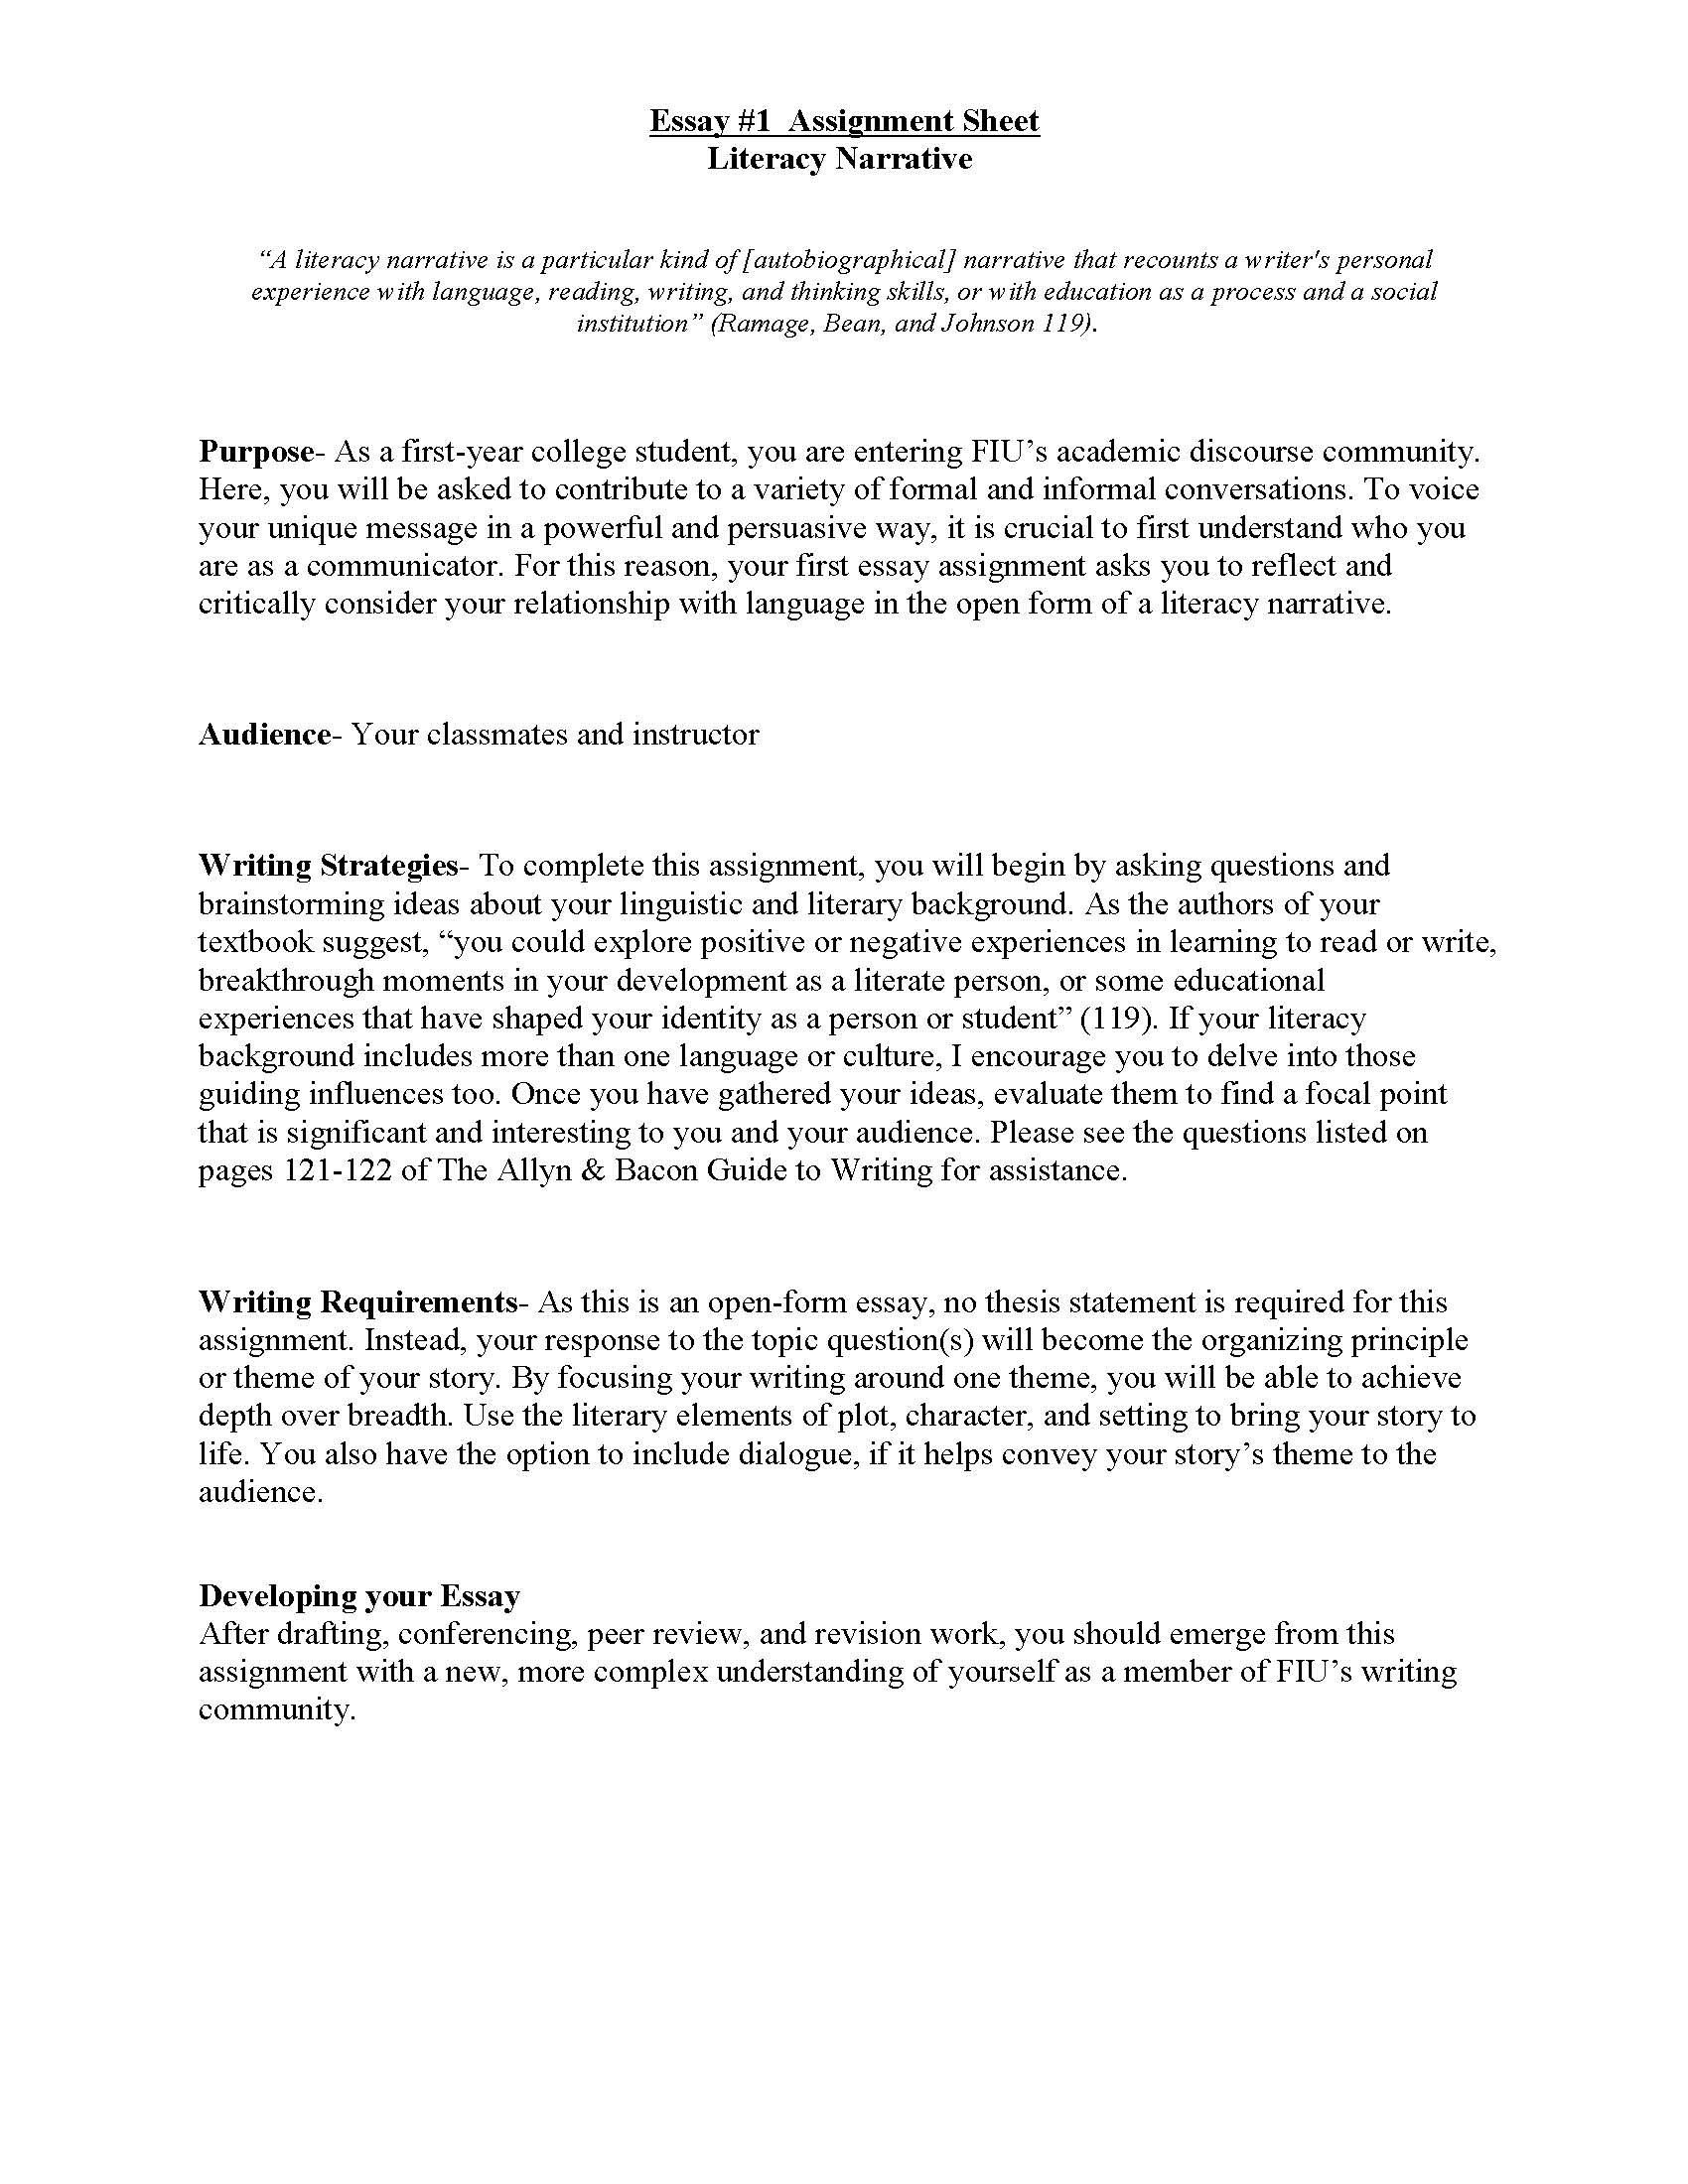 013 Essay Example Literacy Narrative Unitssignment Spring 2012 Page 1 Writing Amazing A Pdf Sample High School Personal Outline Full